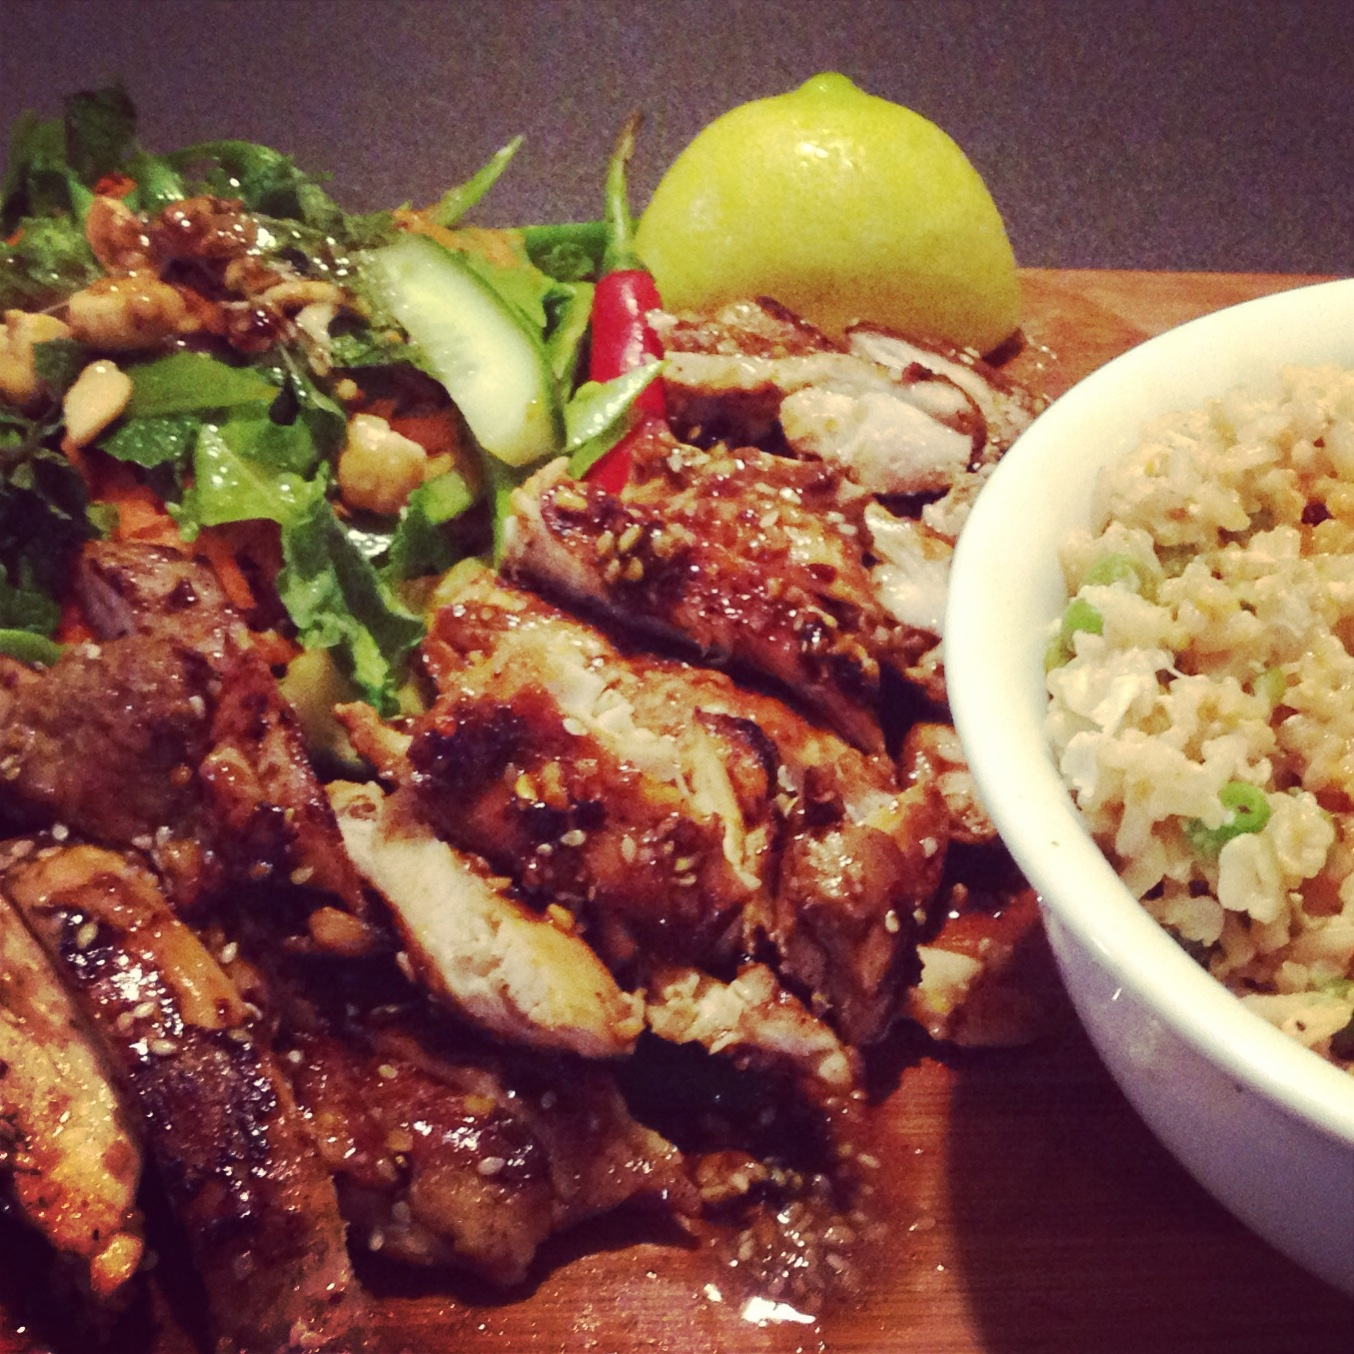 Sticky kickin chicken and crunchy asian salad jamie oliver style kickin chicken 2 forumfinder Choice Image